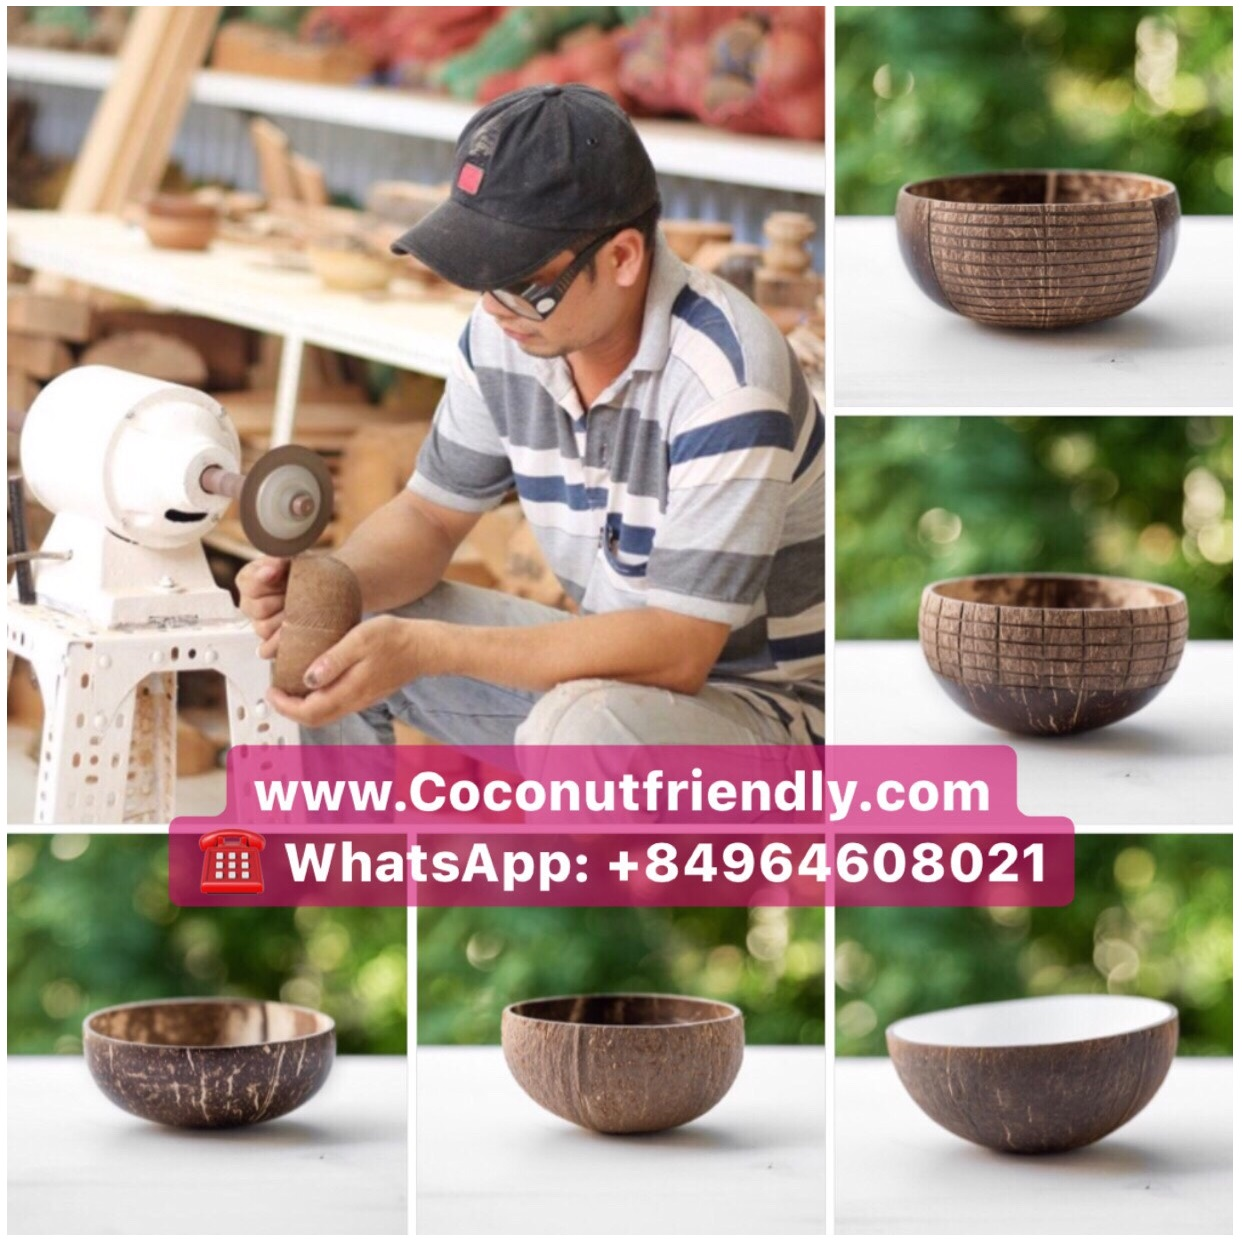 100% Natural Round Coconut Bowl, Factory Reusable Handmade